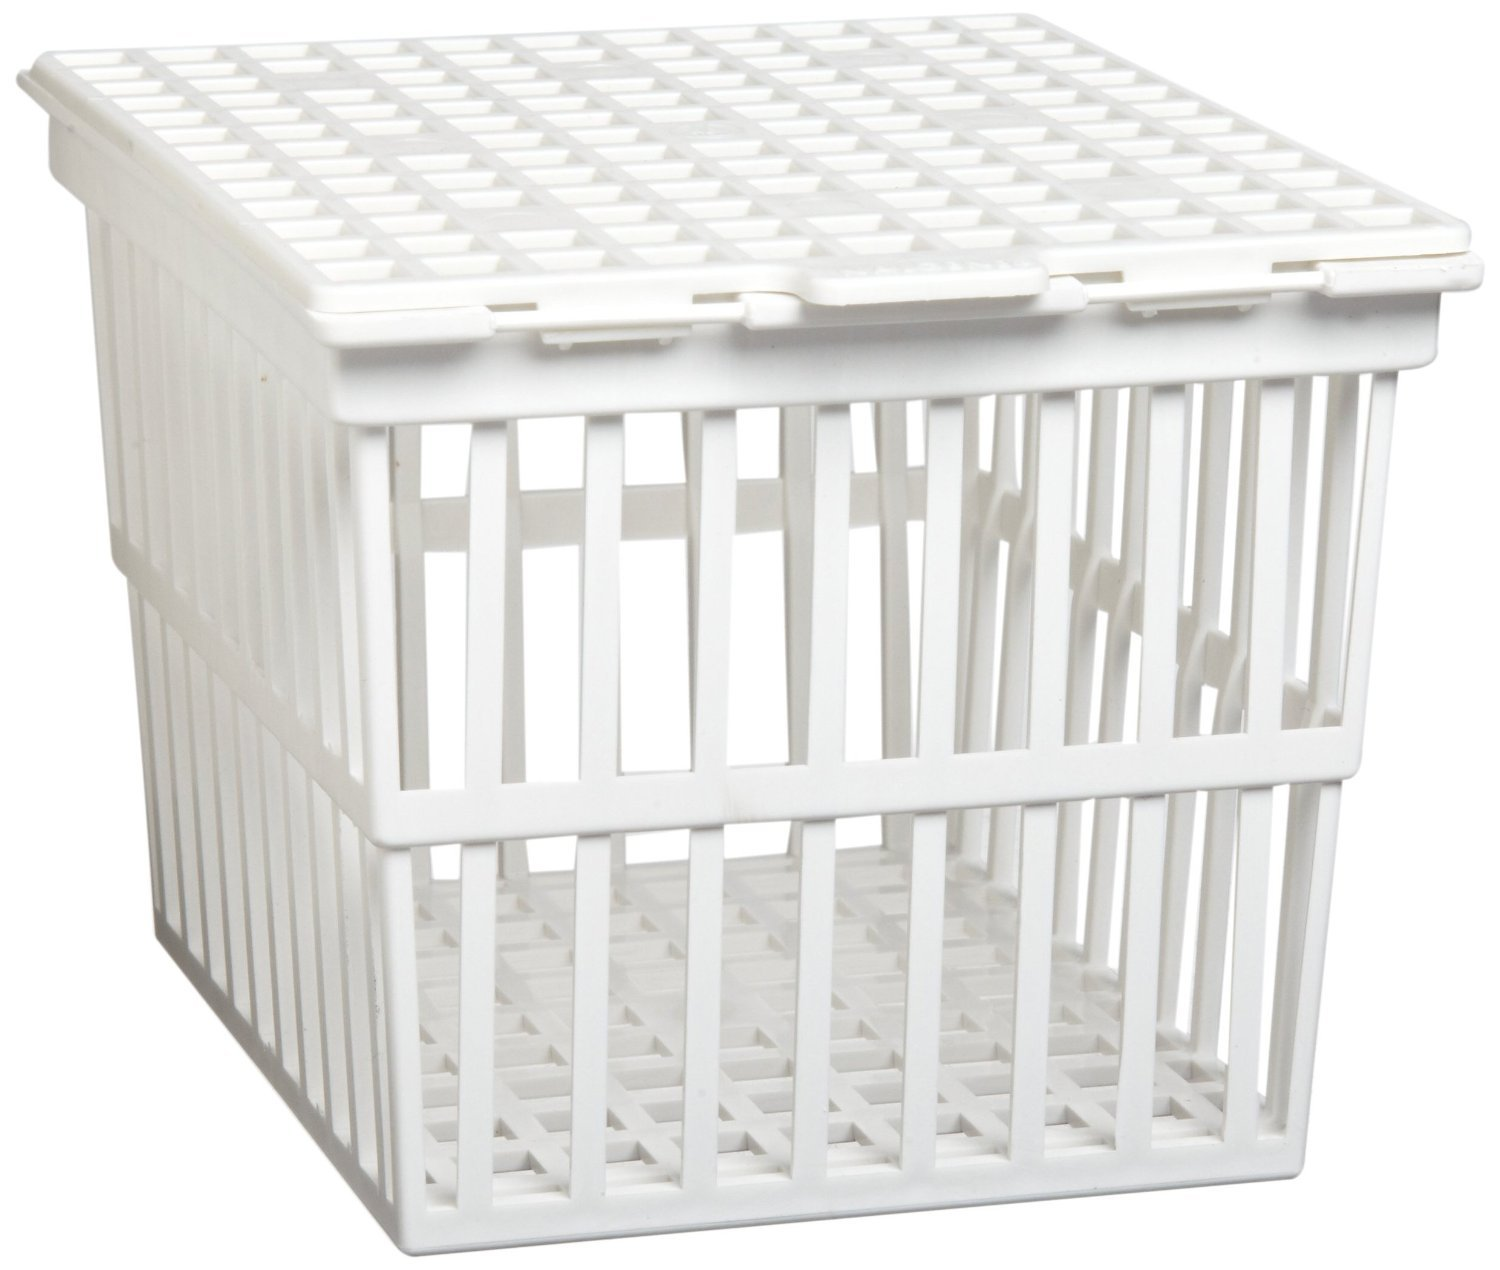 PSC 2003602 White Polypropylene Autoclaving Basket with Lid, 23 cm x 23 cm x 23 cm